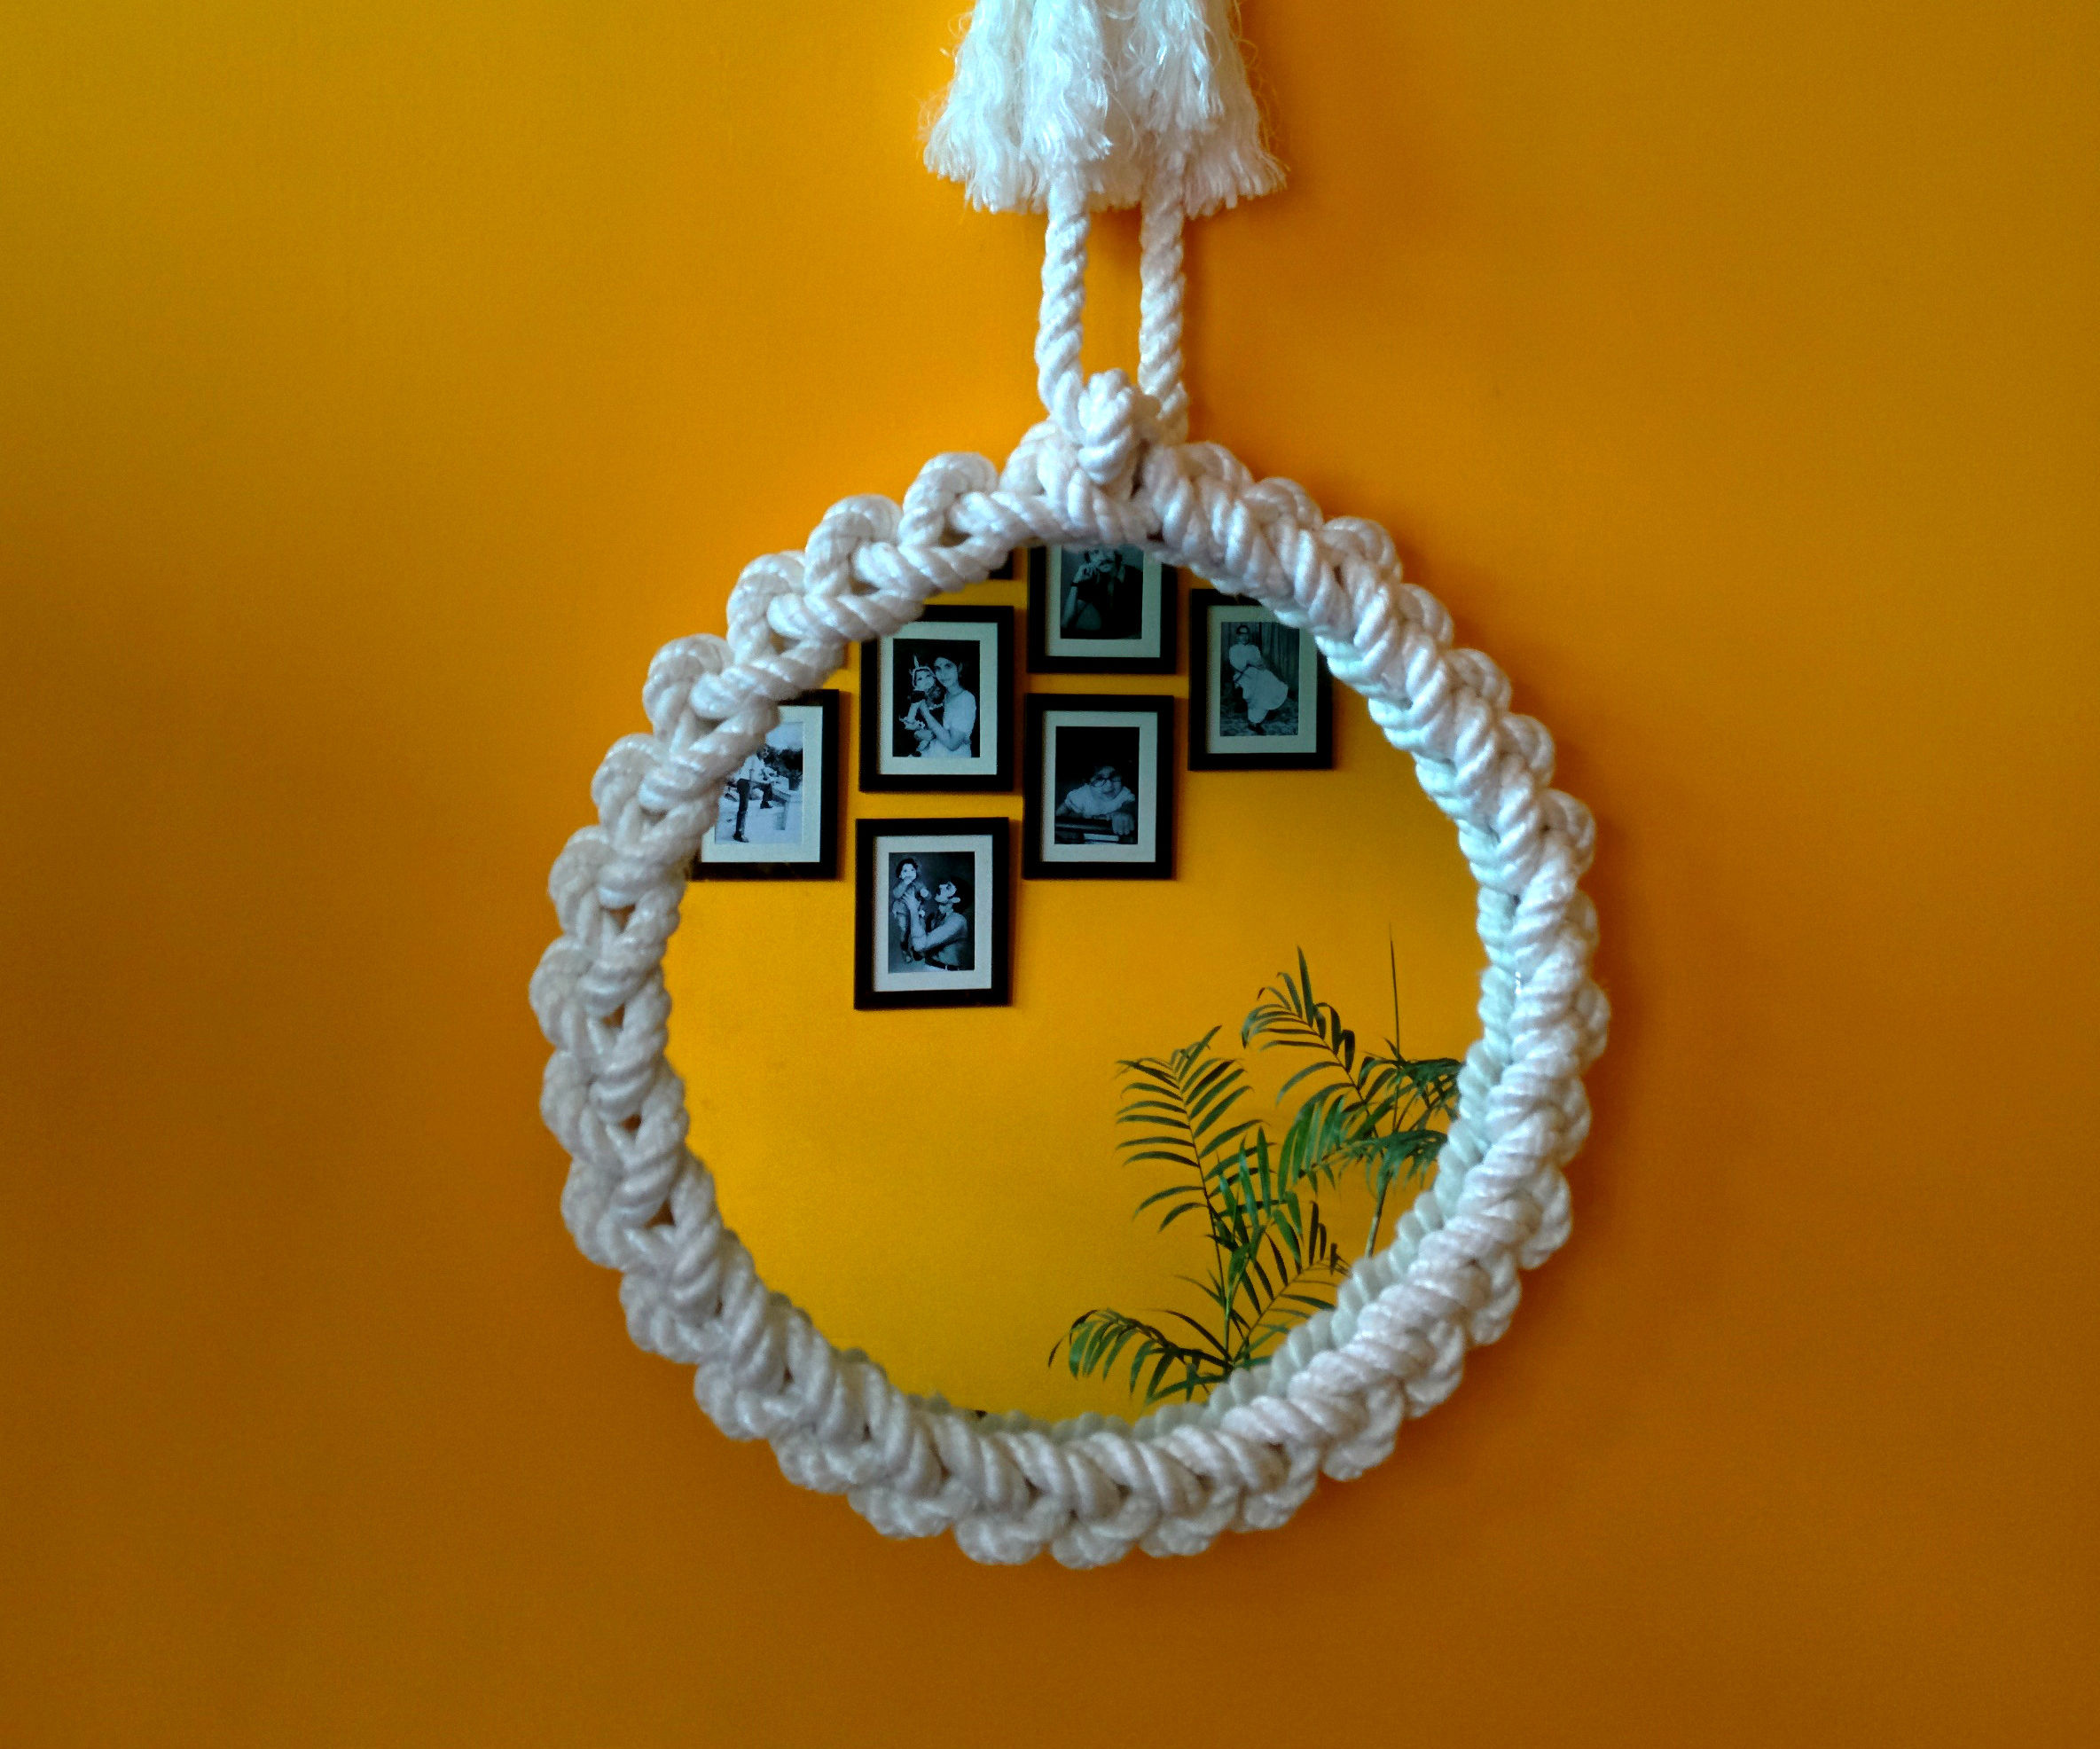 How to make a designer mirror frame using rope